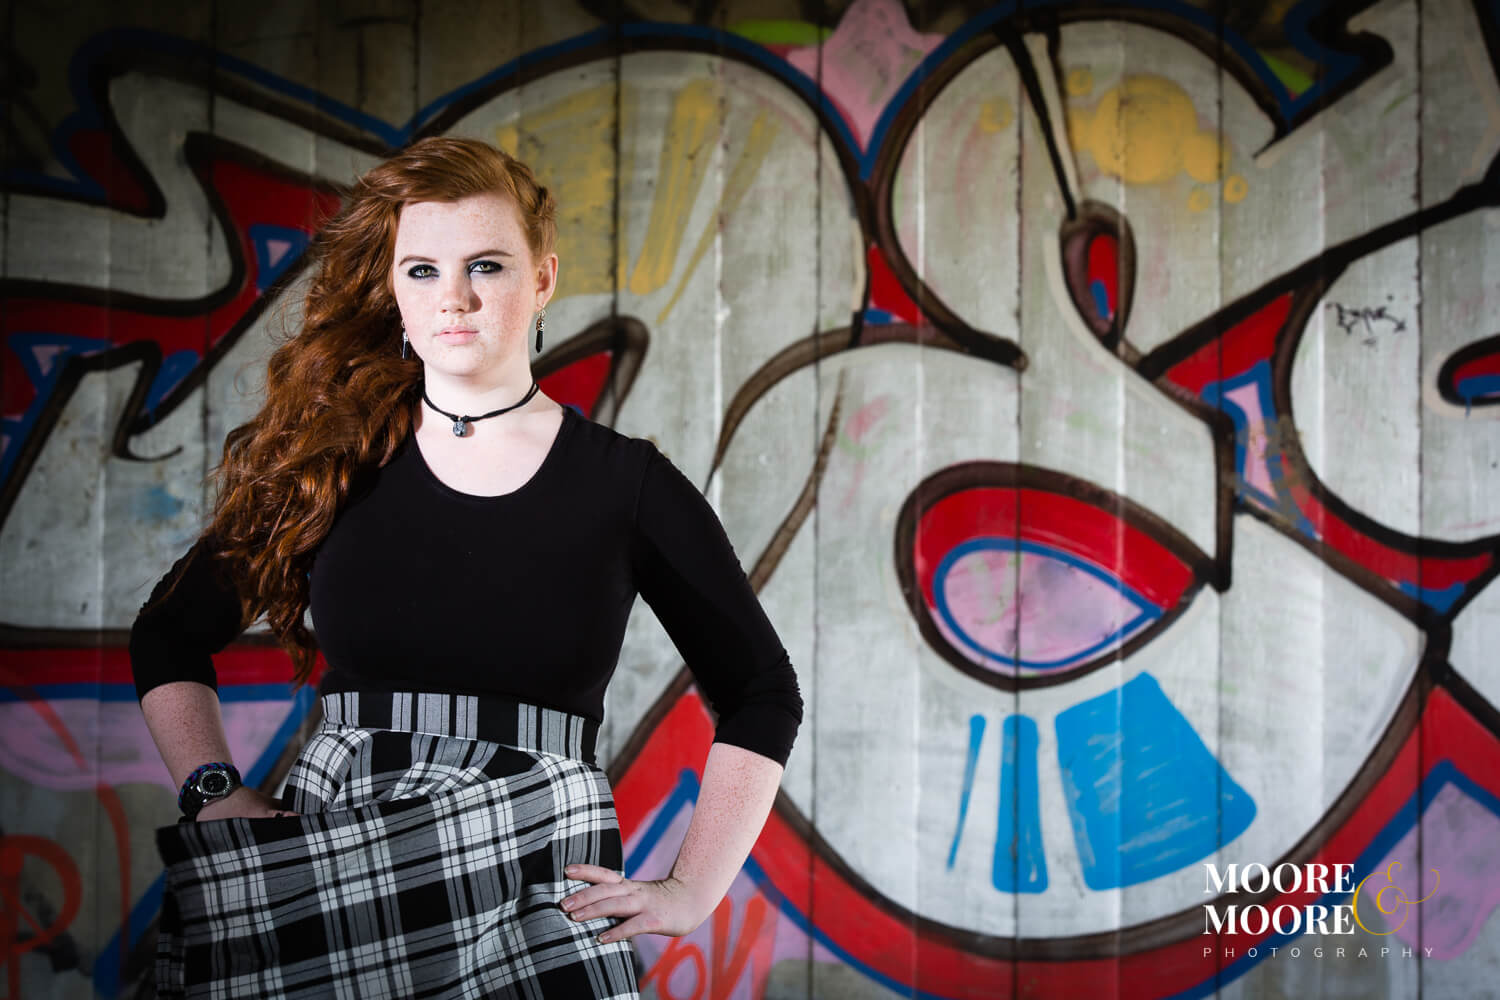 urban with graffiti prom-year-photography-by-moore-moore-photography-hampshire